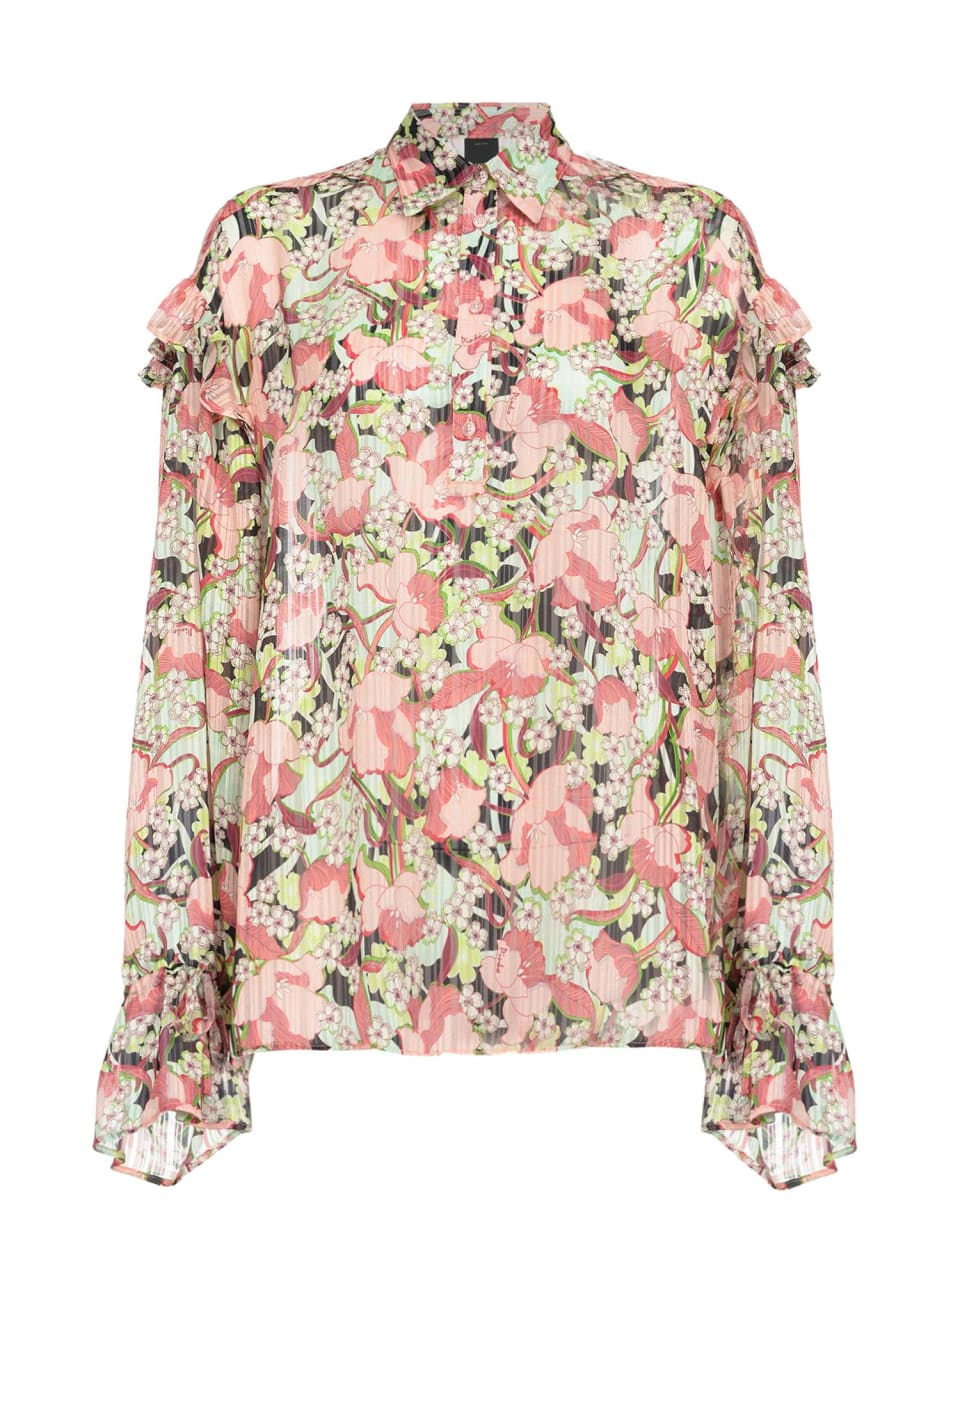 Floral shirt with ruffle